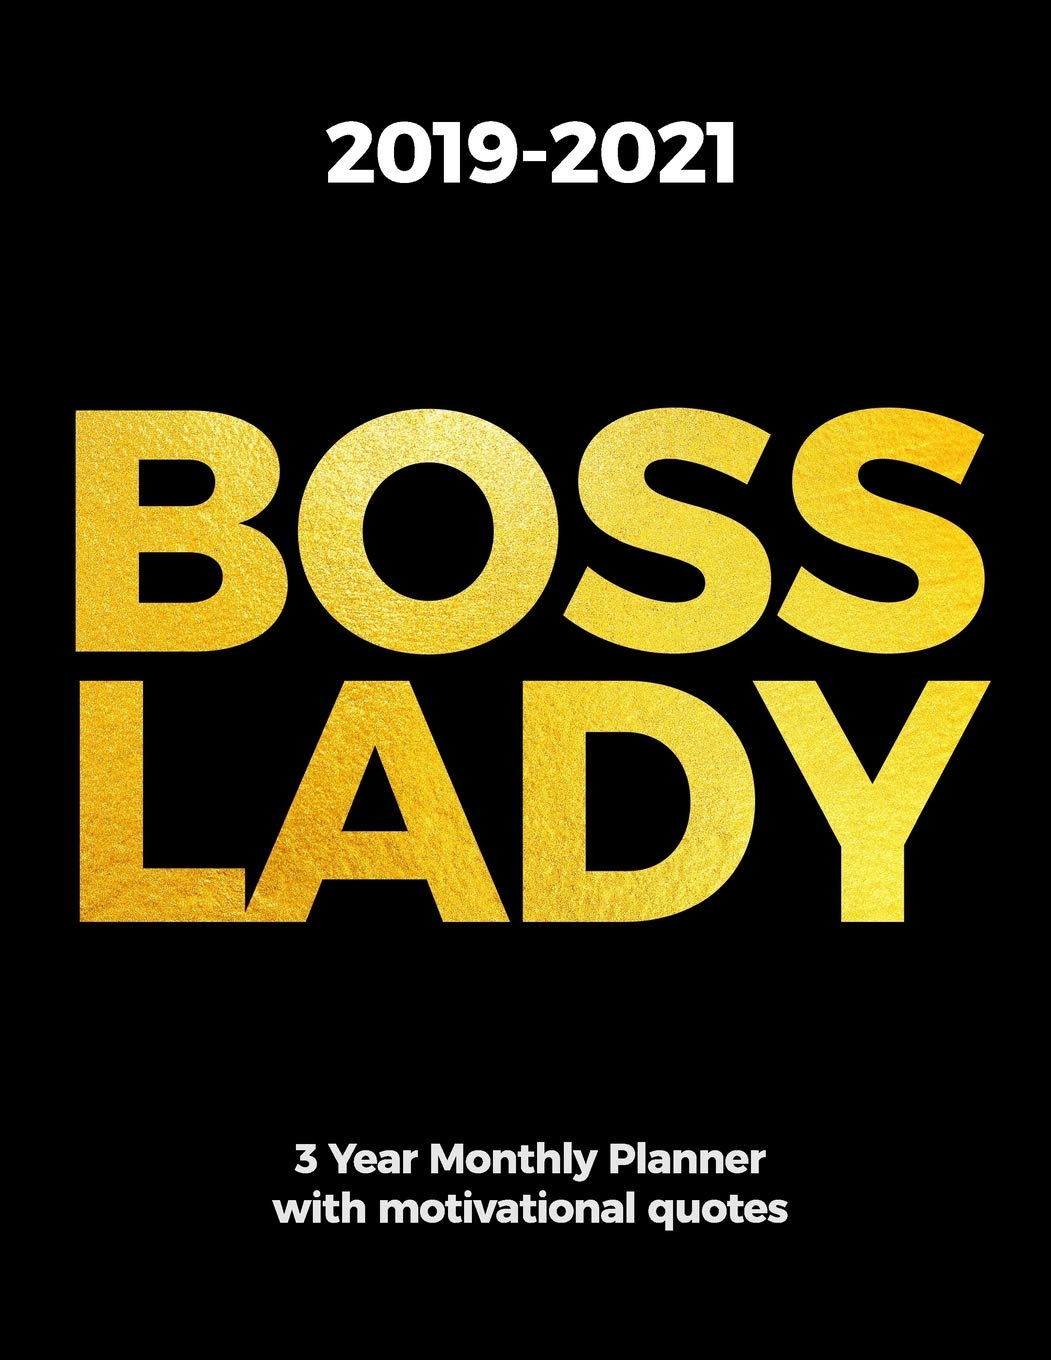 2019-2021 BOSS LADY 3 Year Monthly Planner with Motivational Quotes